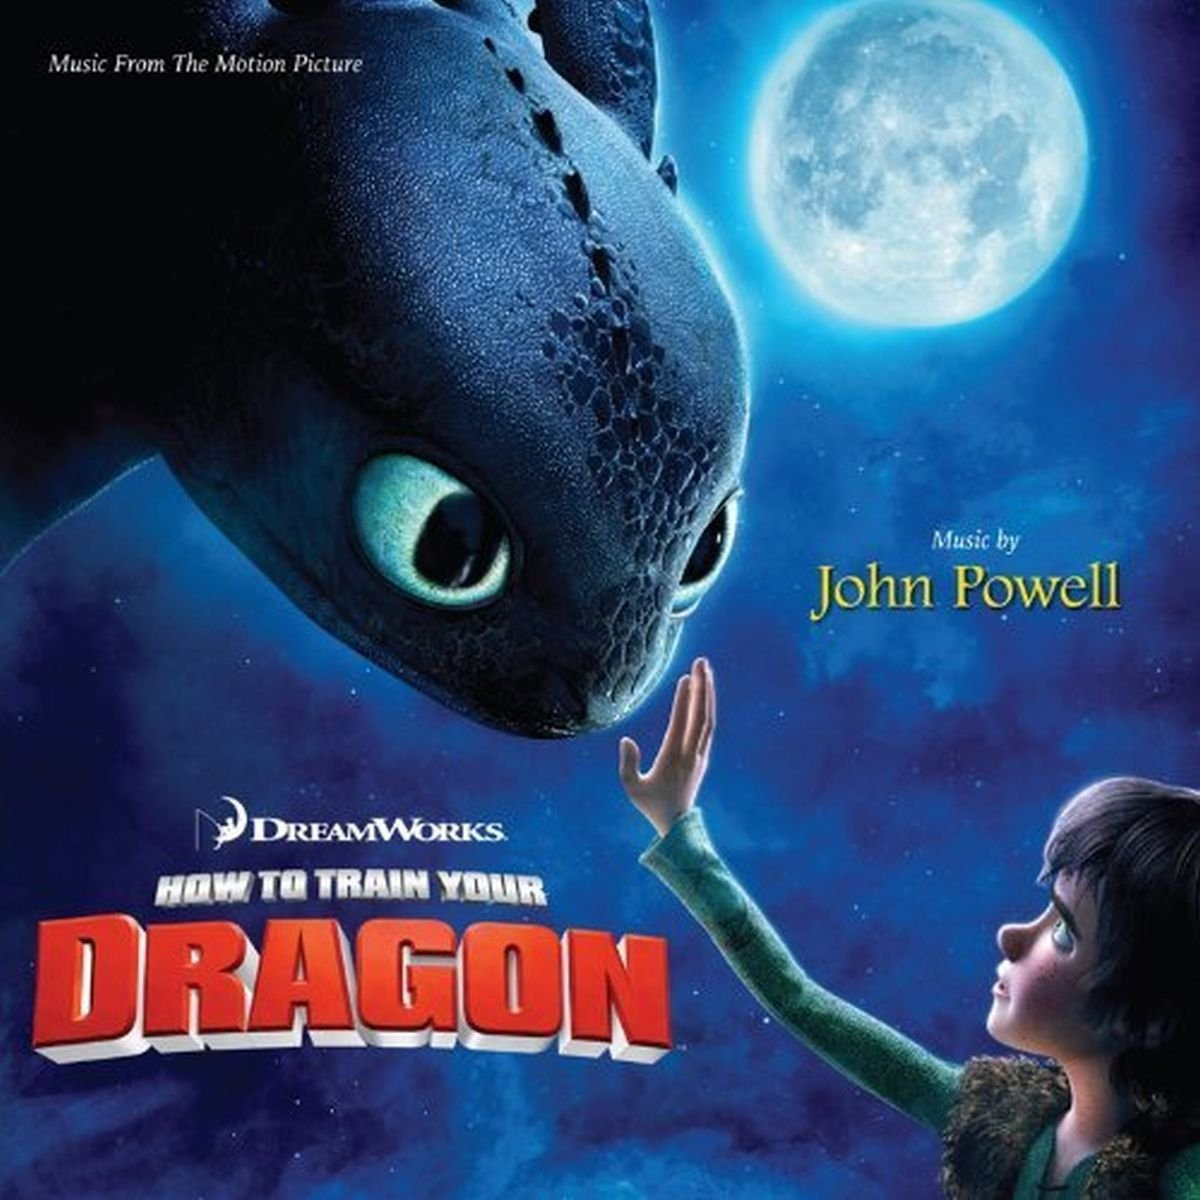 How To Train Your Dragon: Amazon.co.uk: Music